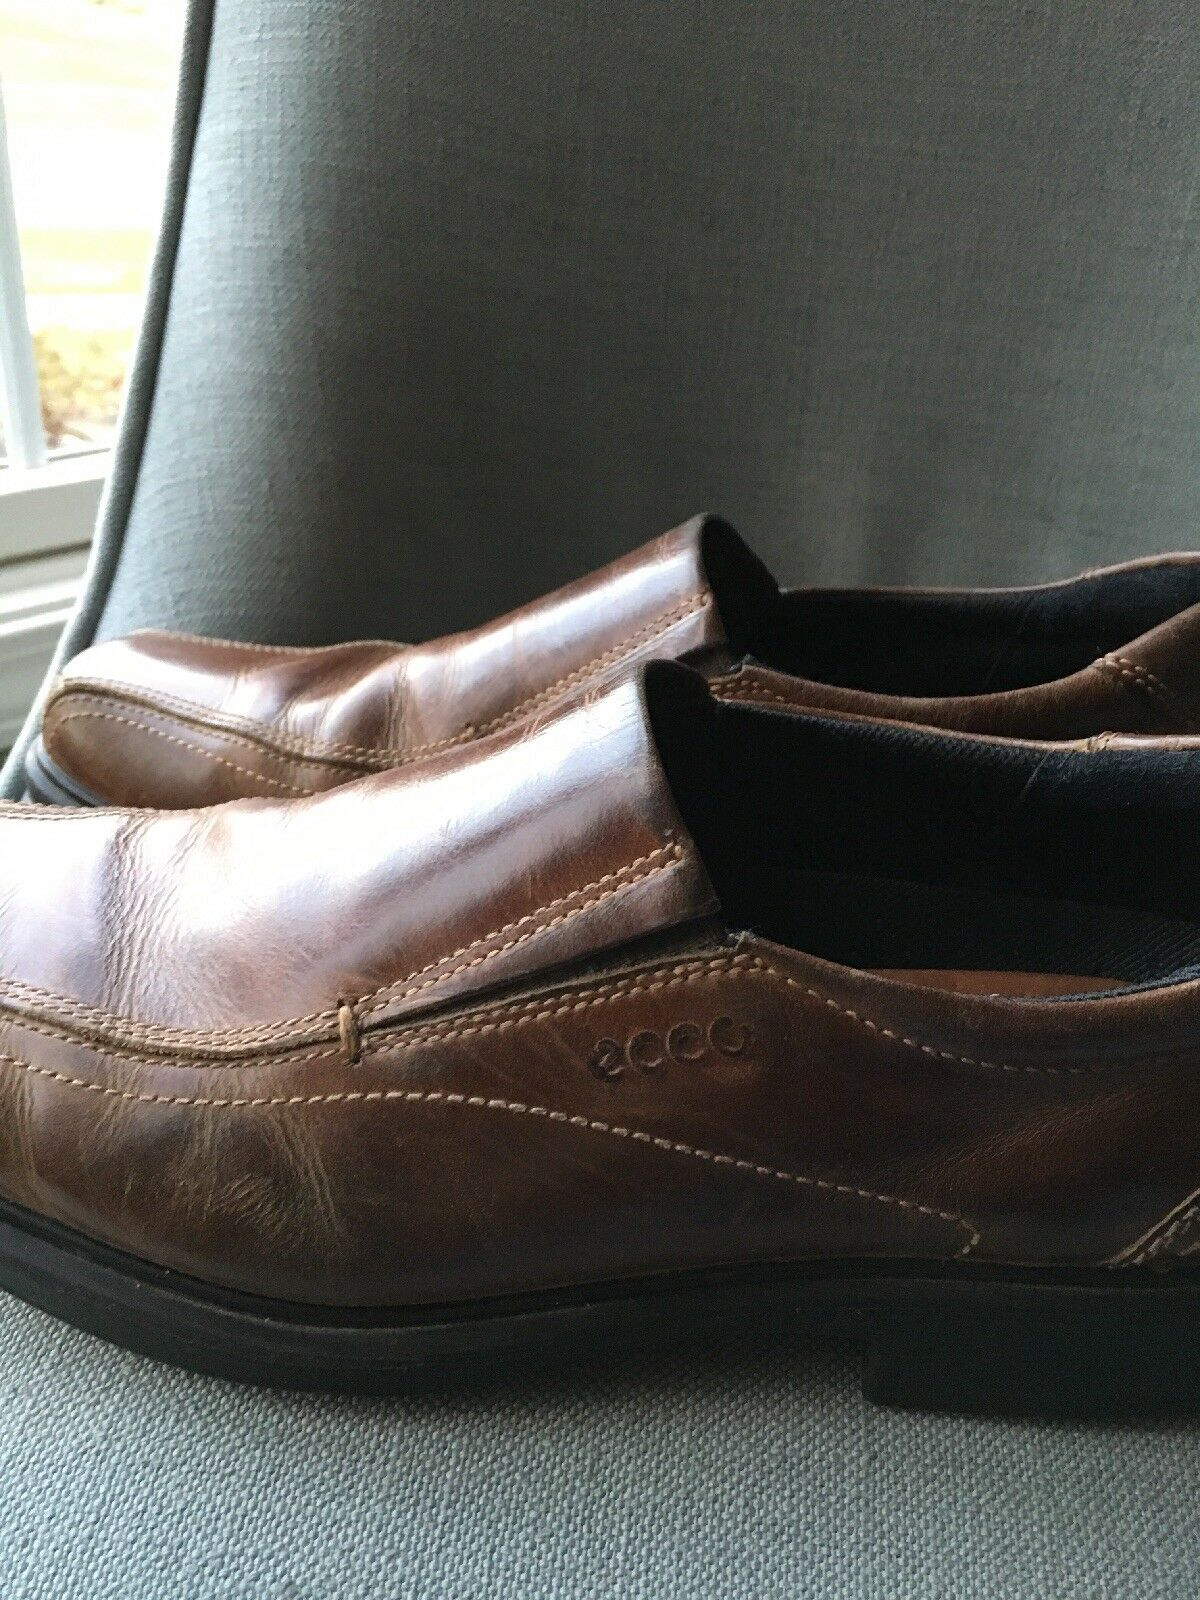 ECCO BROWN LEATHER SLIP ON GREAT SOLES LIGHT AND EASY SZ 44